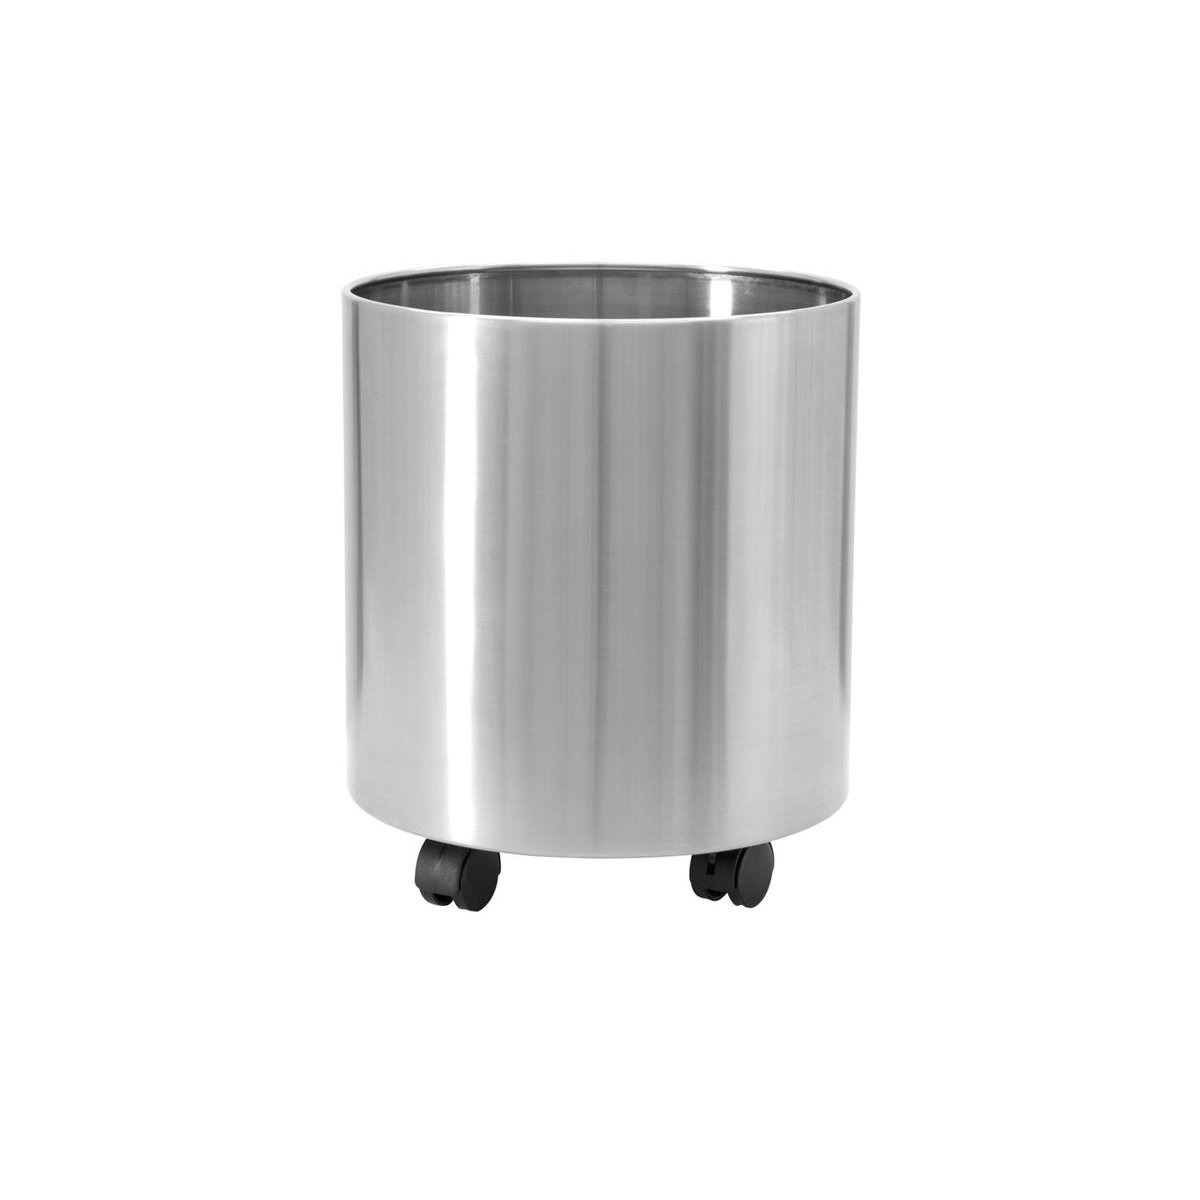 Europalms STEELECHT-40, stainless steel pot, Ø40cm